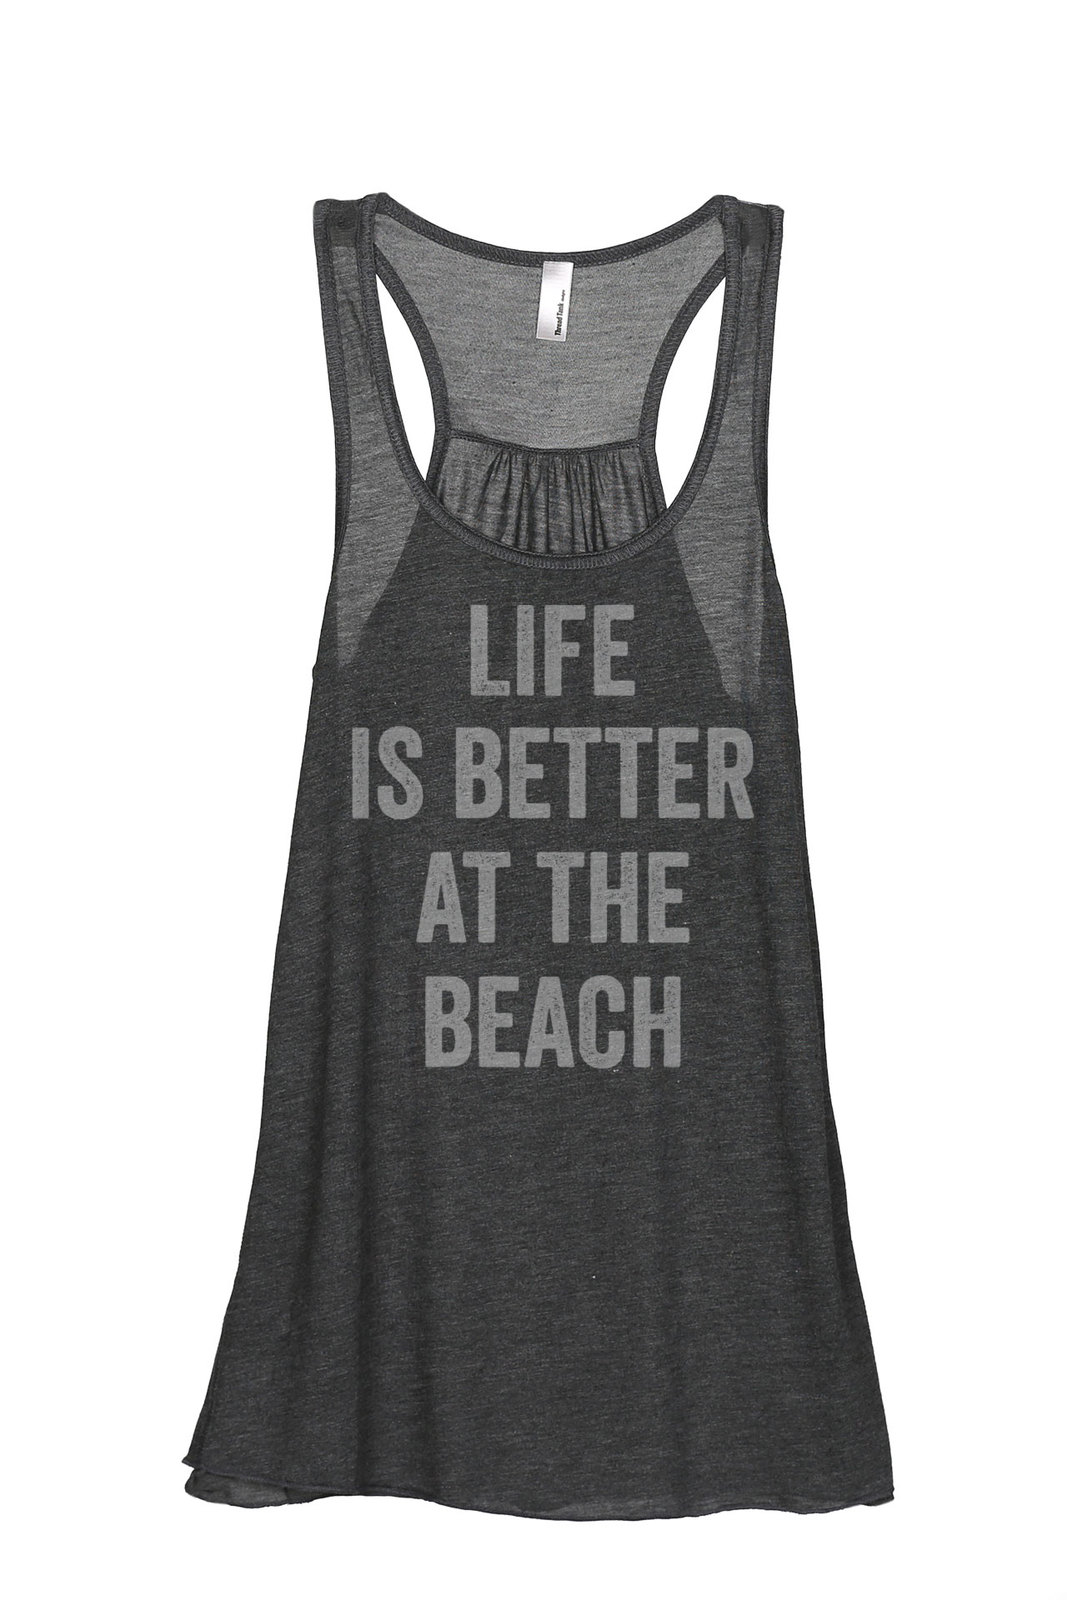 Thread Tank Life Is Better Beach Women's Sleeveless Flowy Racerback Tank Top Cha